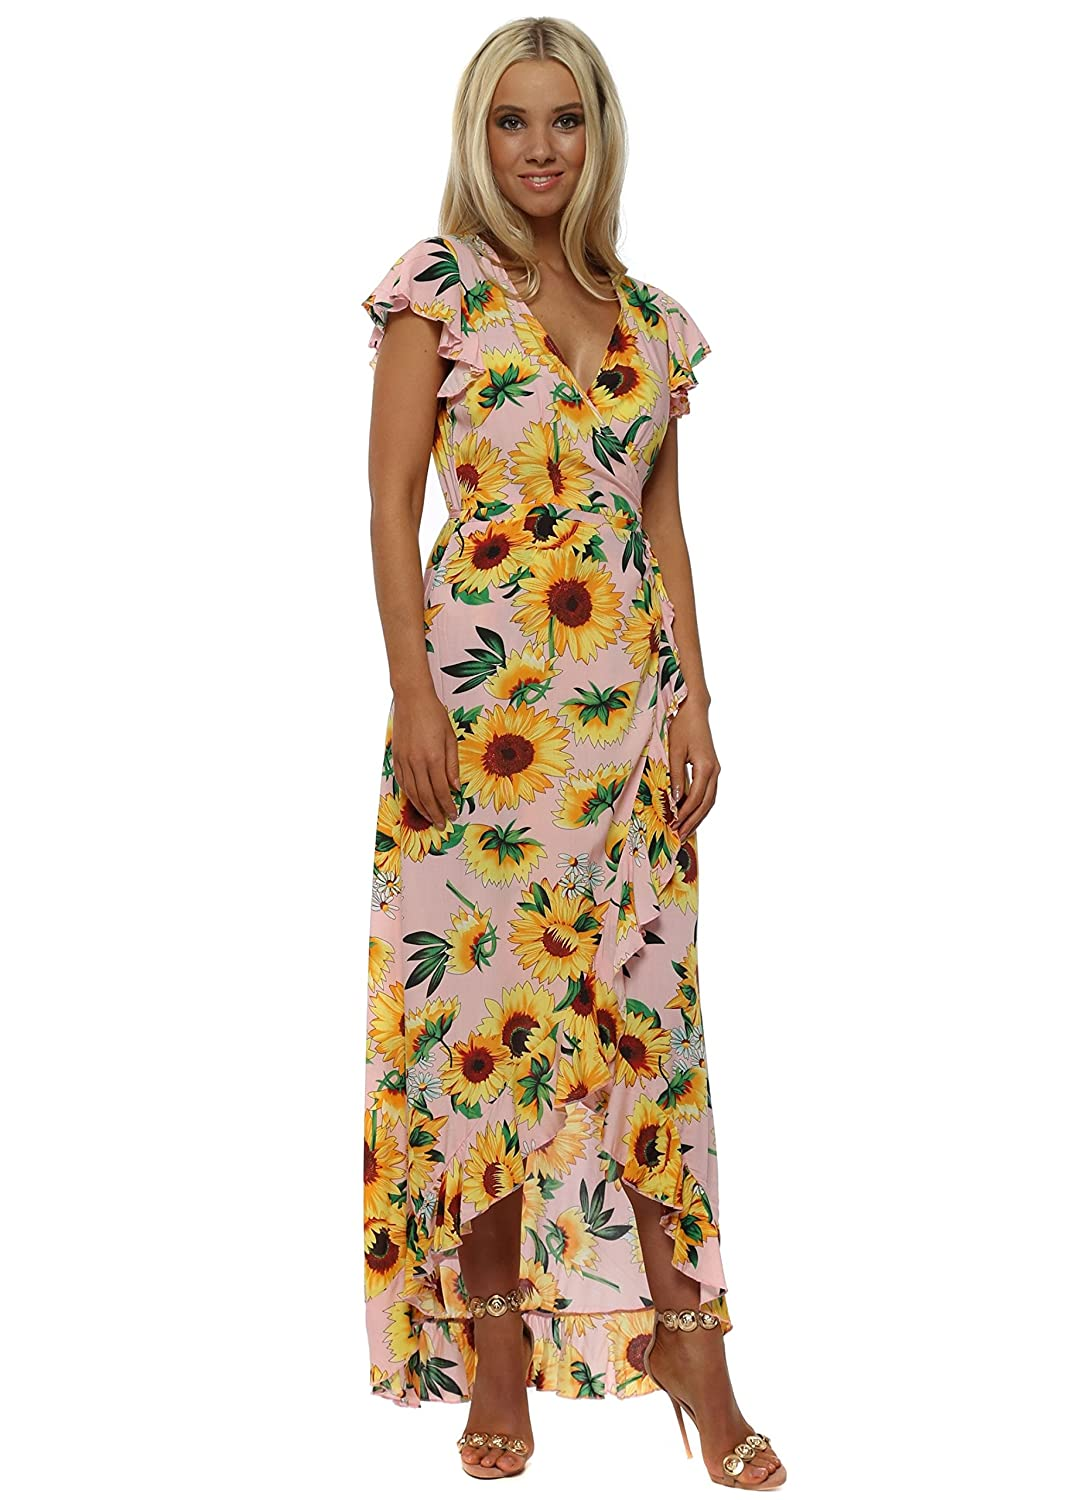 44722134548 Jowell Sunflower Print Ruffle Wrap Dress Pink  Amazon.co.uk  Clothing